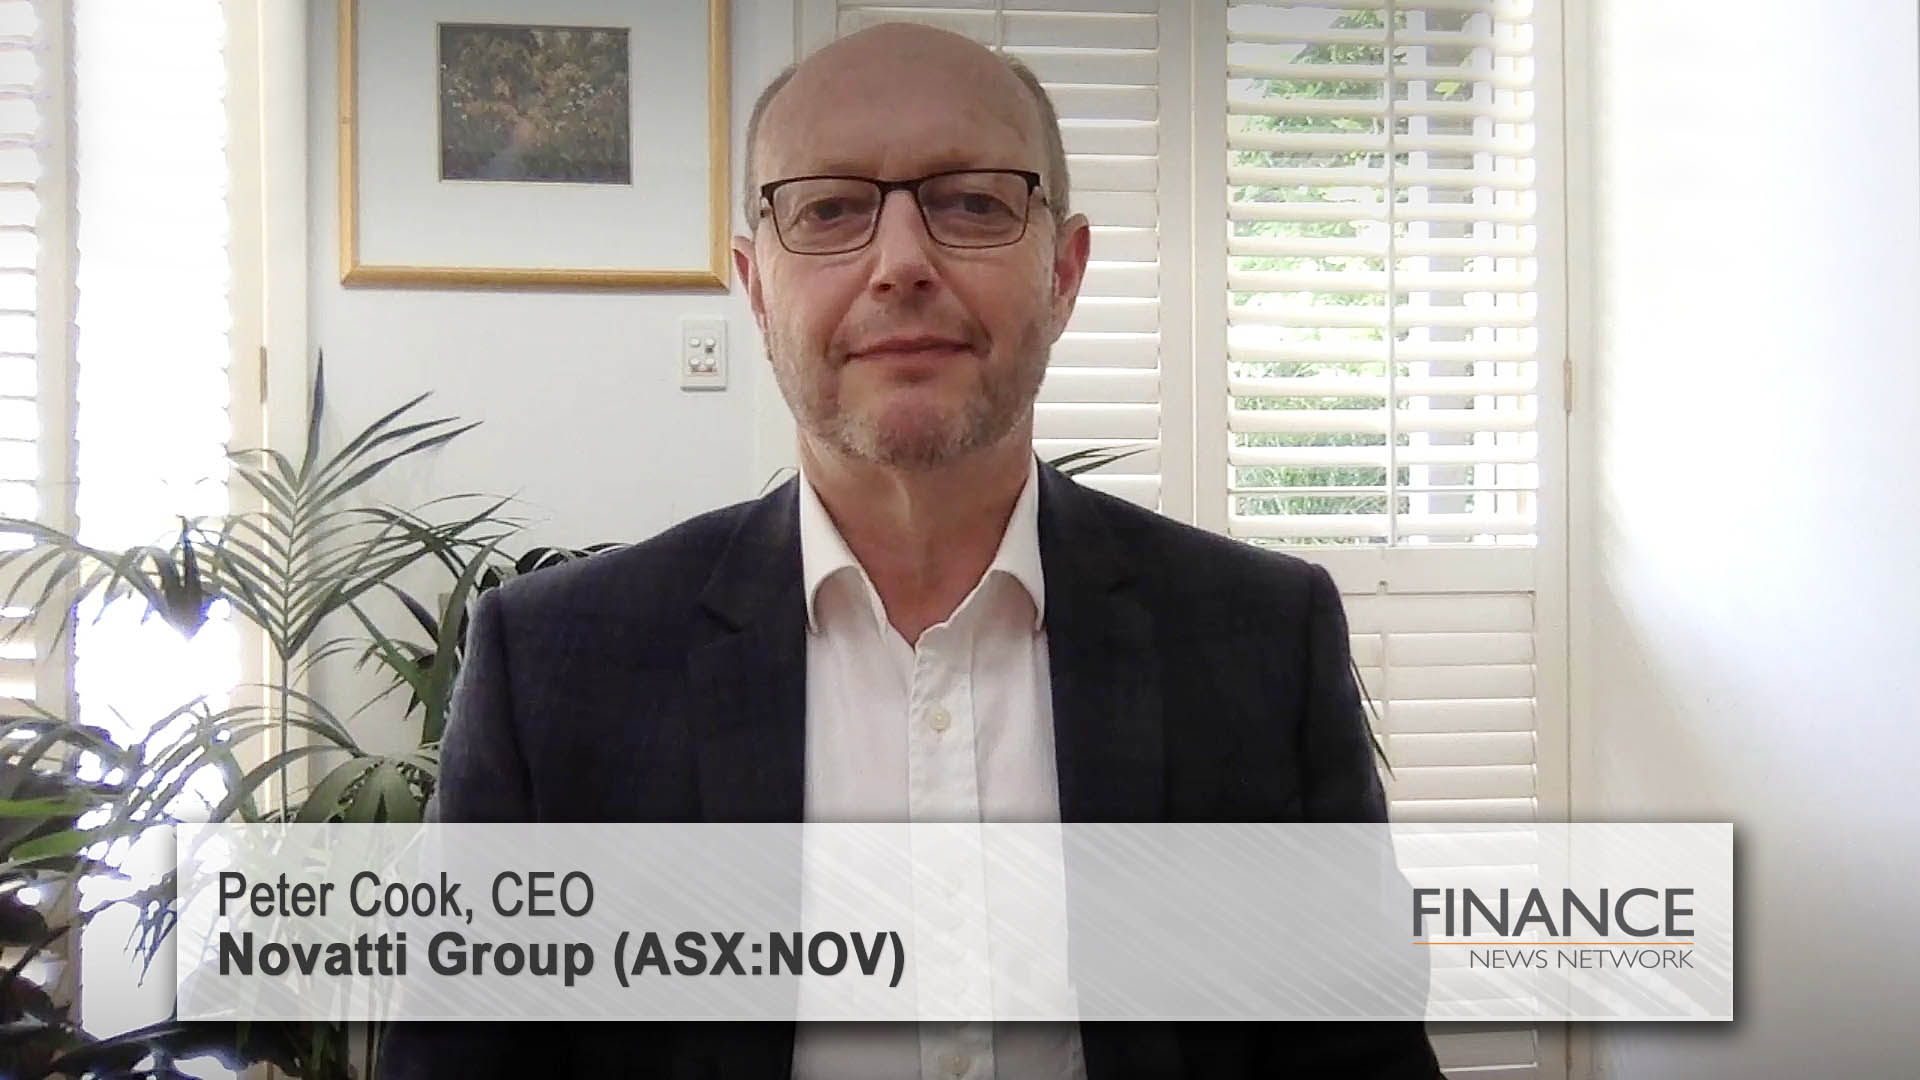 Novatti Group (ASX:NOV) - banking subsidiary receives major external funding, ready for licence and launch